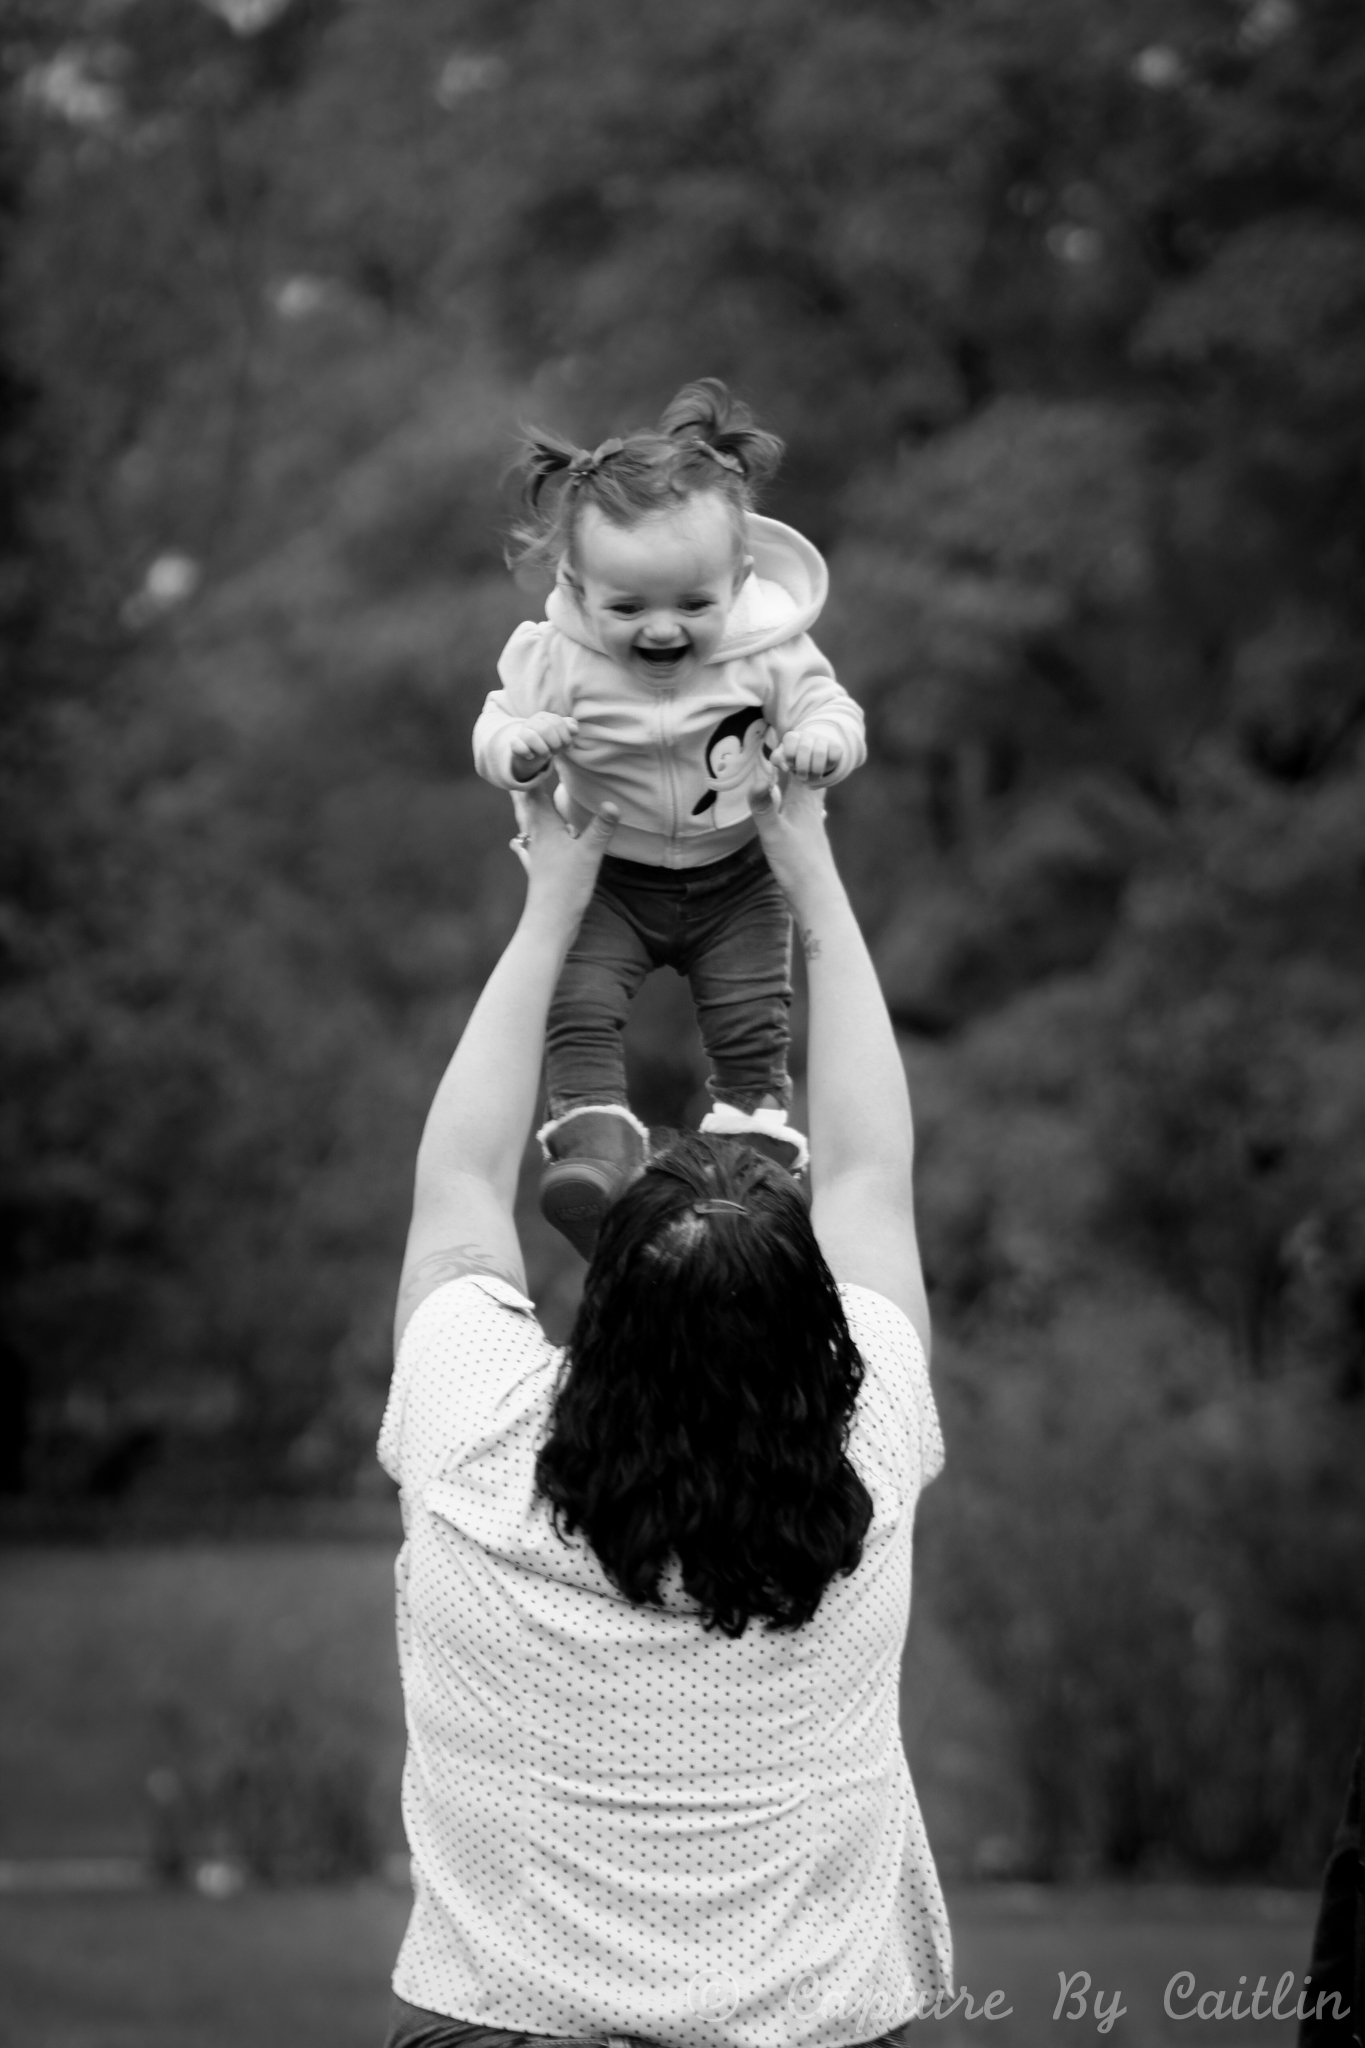 """""""Everyone, I cannot recommend Capture By Caitlin enough. She has done such a phenomenal job with all of our family events and has the eye and patience to assure that moments like these are captured forever. Thank you for being awesome Caitlin ♡ and thank you for this pic of my flying little love"""" - - Krissy Niedziolka, 2018"""